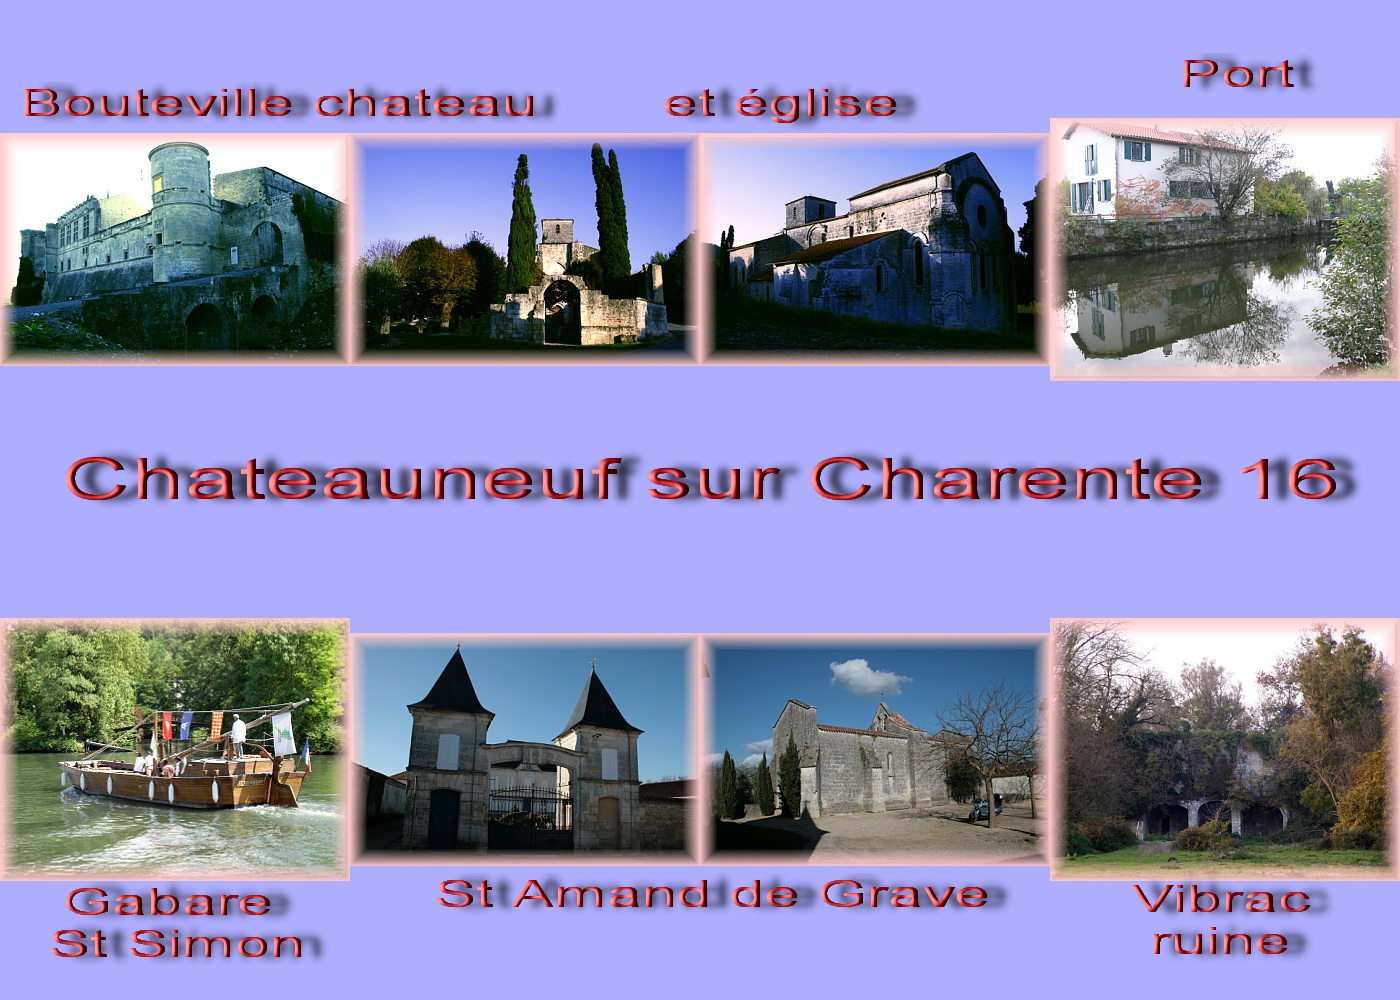 carte charente - 16 cog Chateauneuf